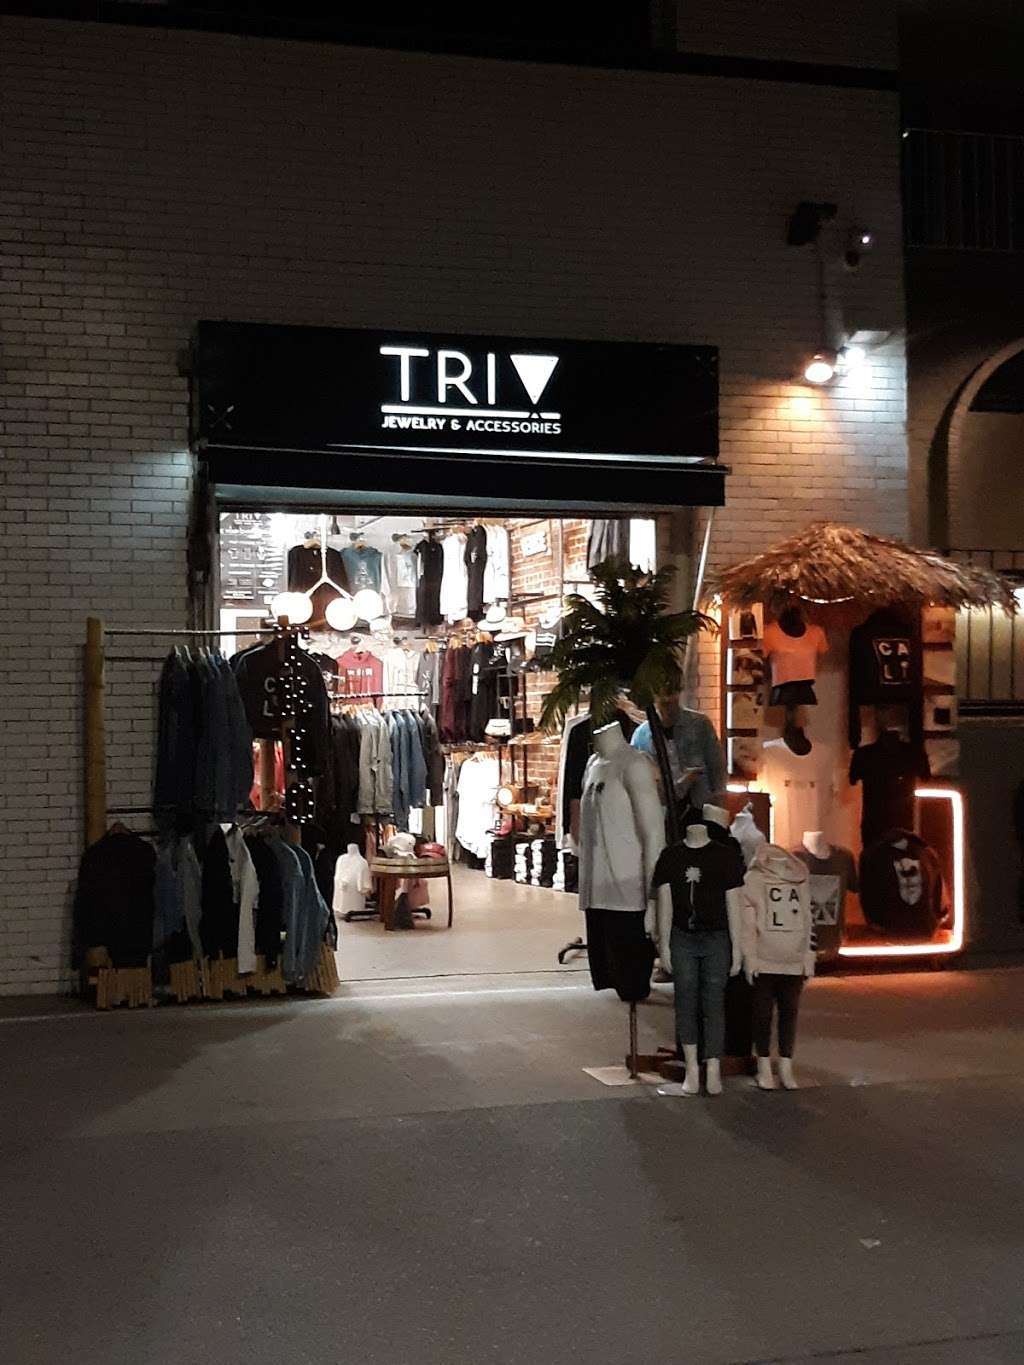 TRI ! Jewelry and accessories - clothing store  | Photo 1 of 3 | Address: 8 Brooks Ave, Venice, CA 90291, USA | Phone: (424) 645-2678